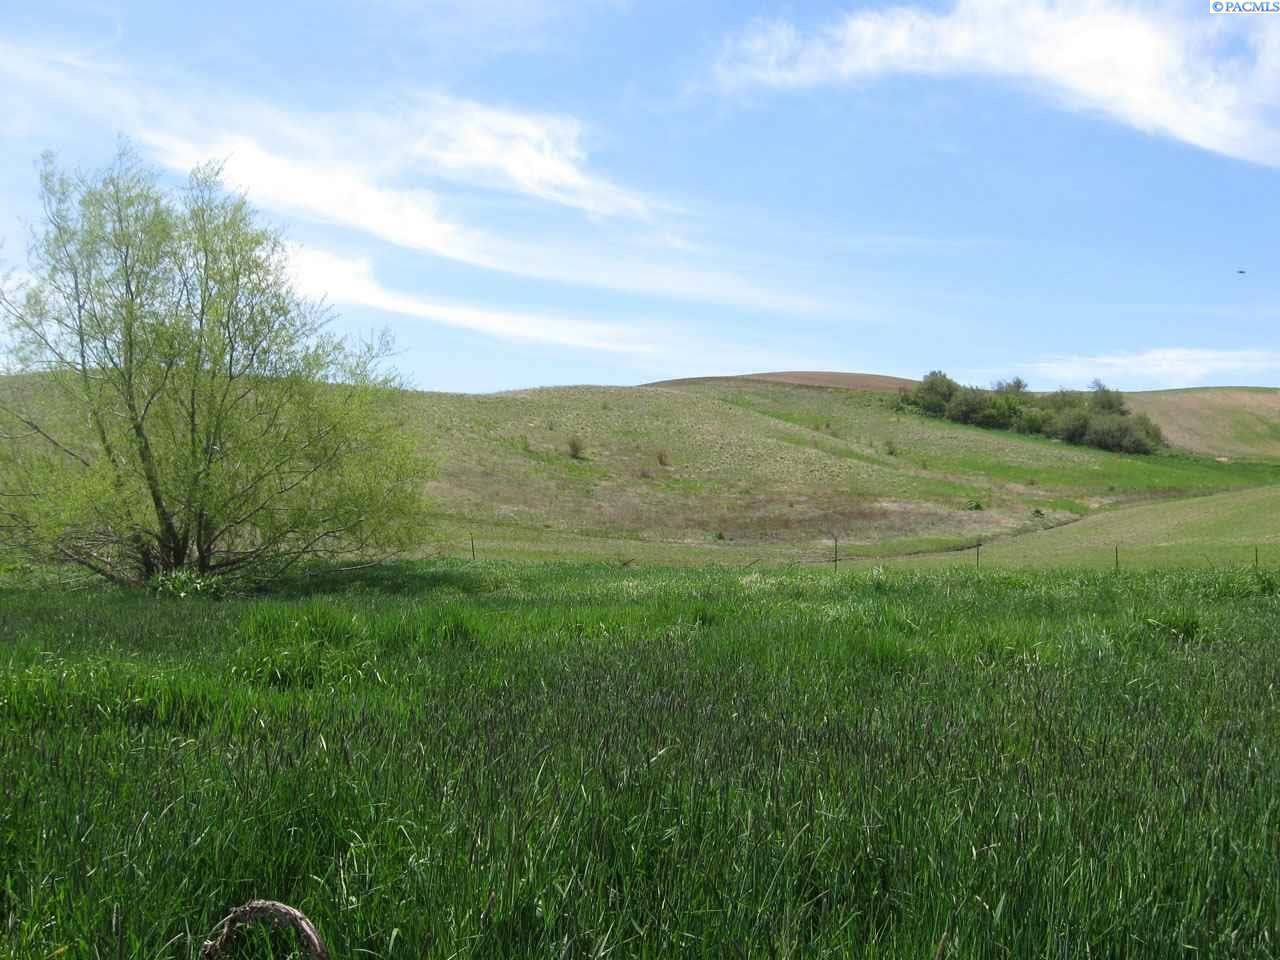 Land for Sale at TBD Becker Road Colton, Washington 99113 United States